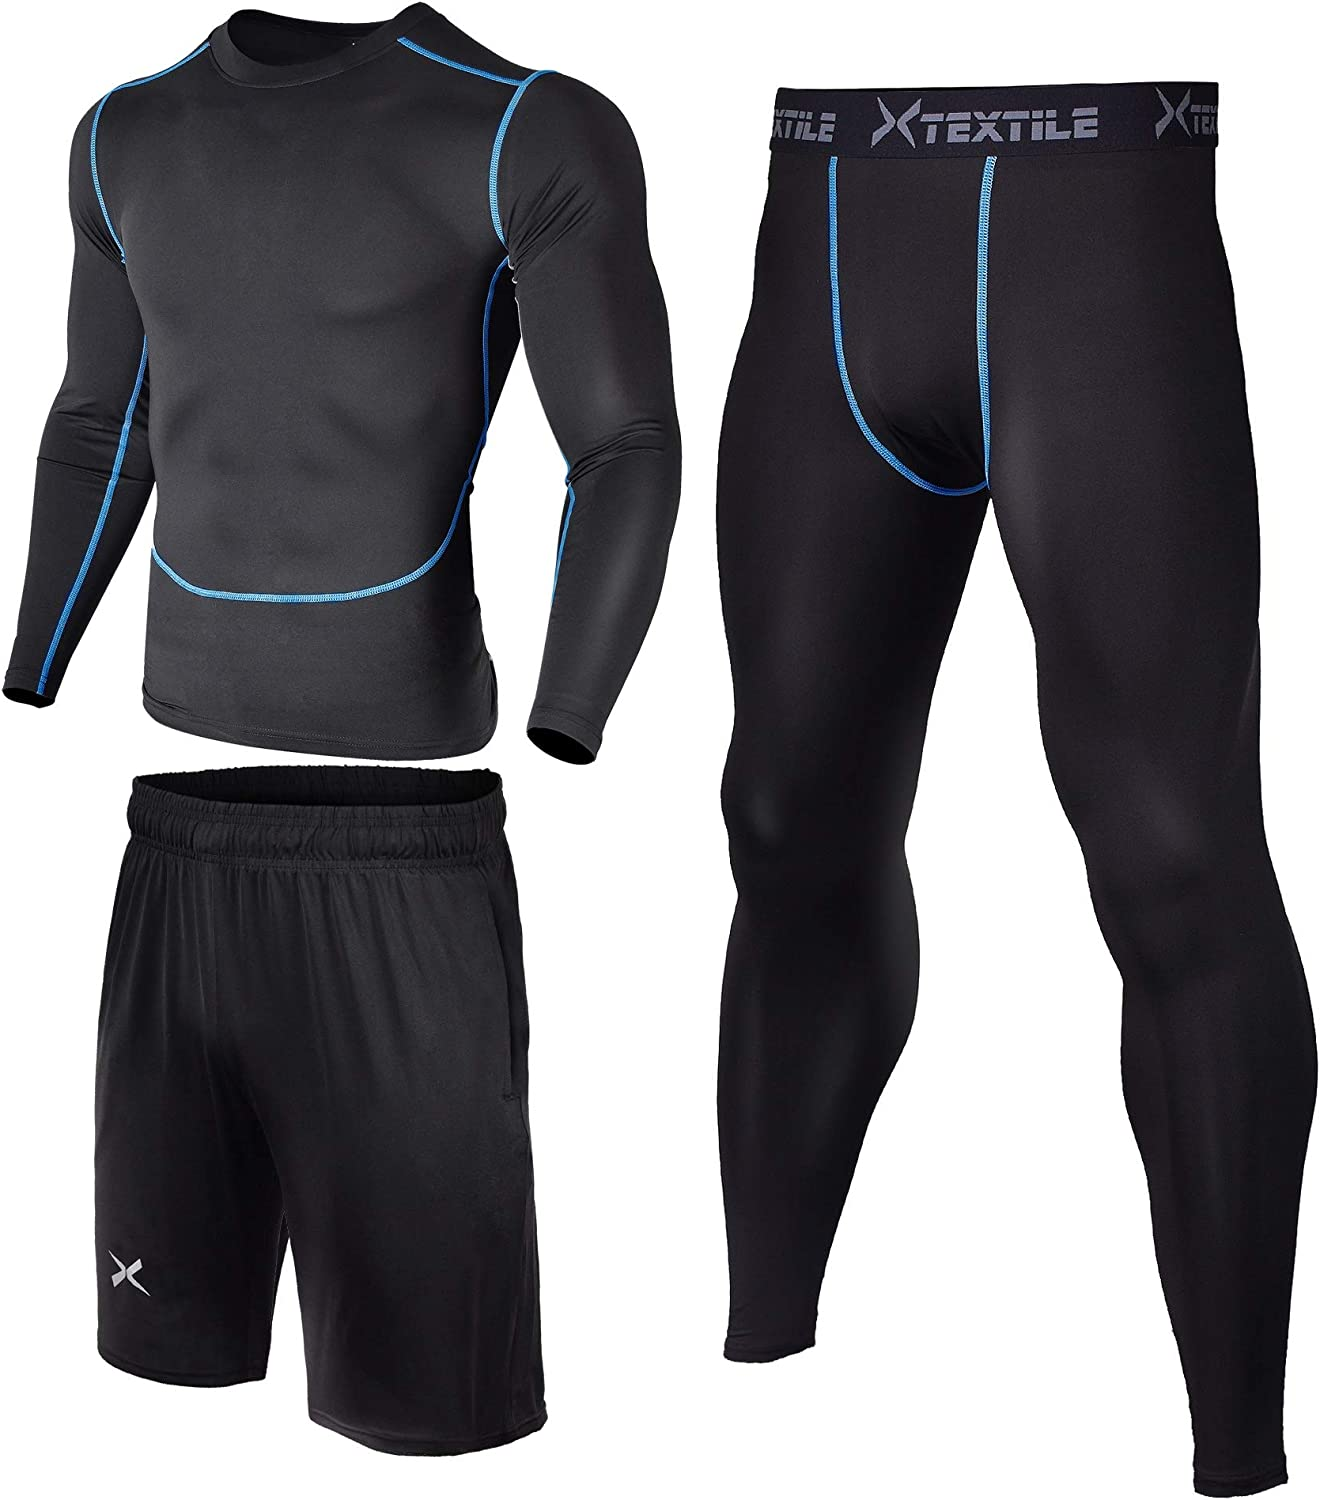 Xtextile 3 Pcs Men's Workout Set with Compression Pants Long Sleeve Shirts and Loose Fitting Shorts for Running Fitness